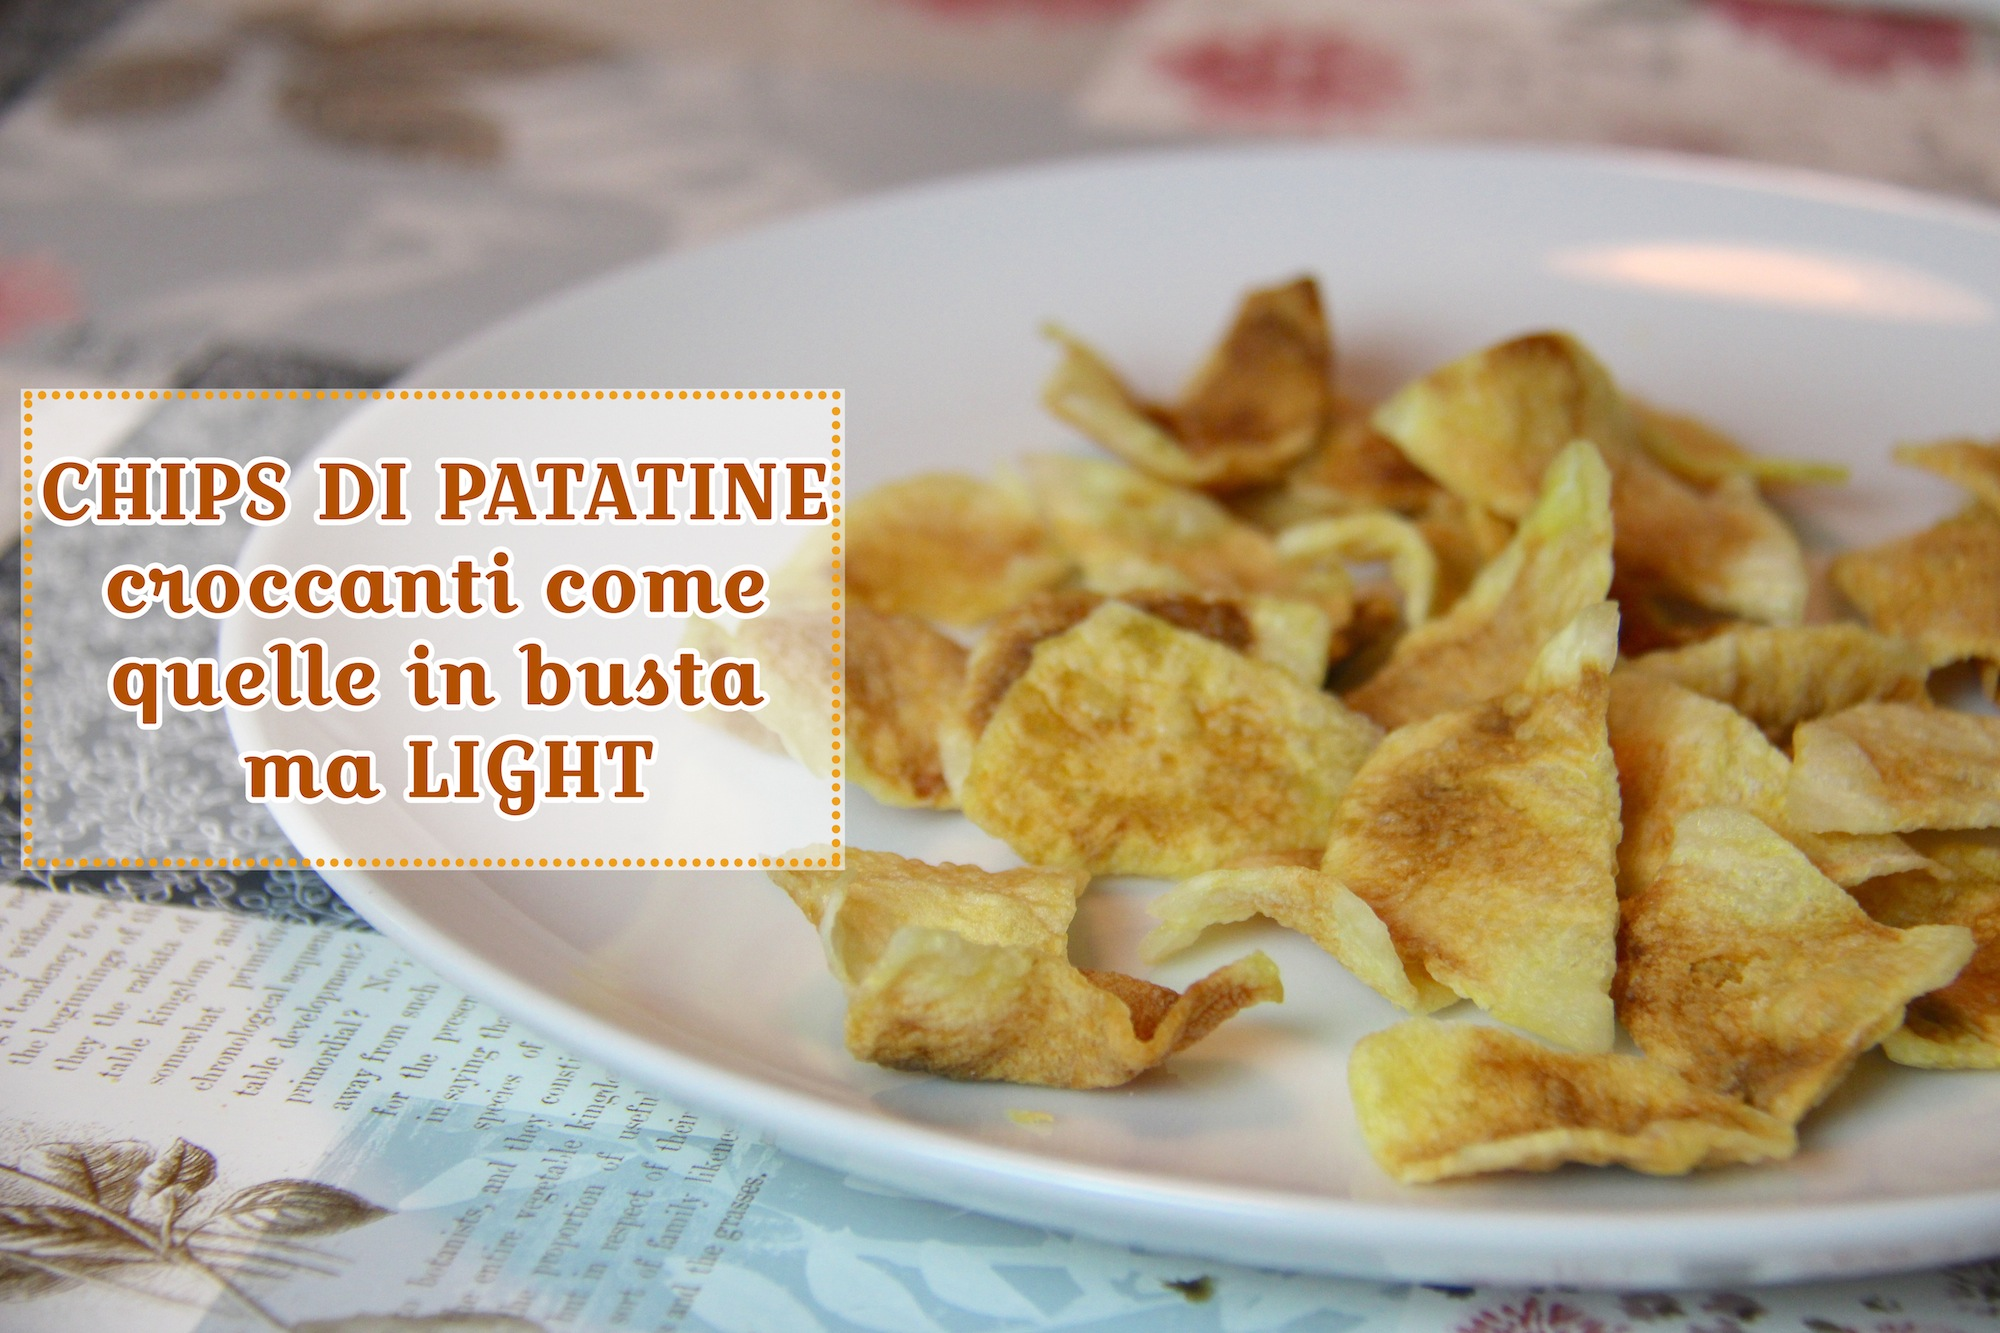 CHIPS PATATINE LIGHT al microonde